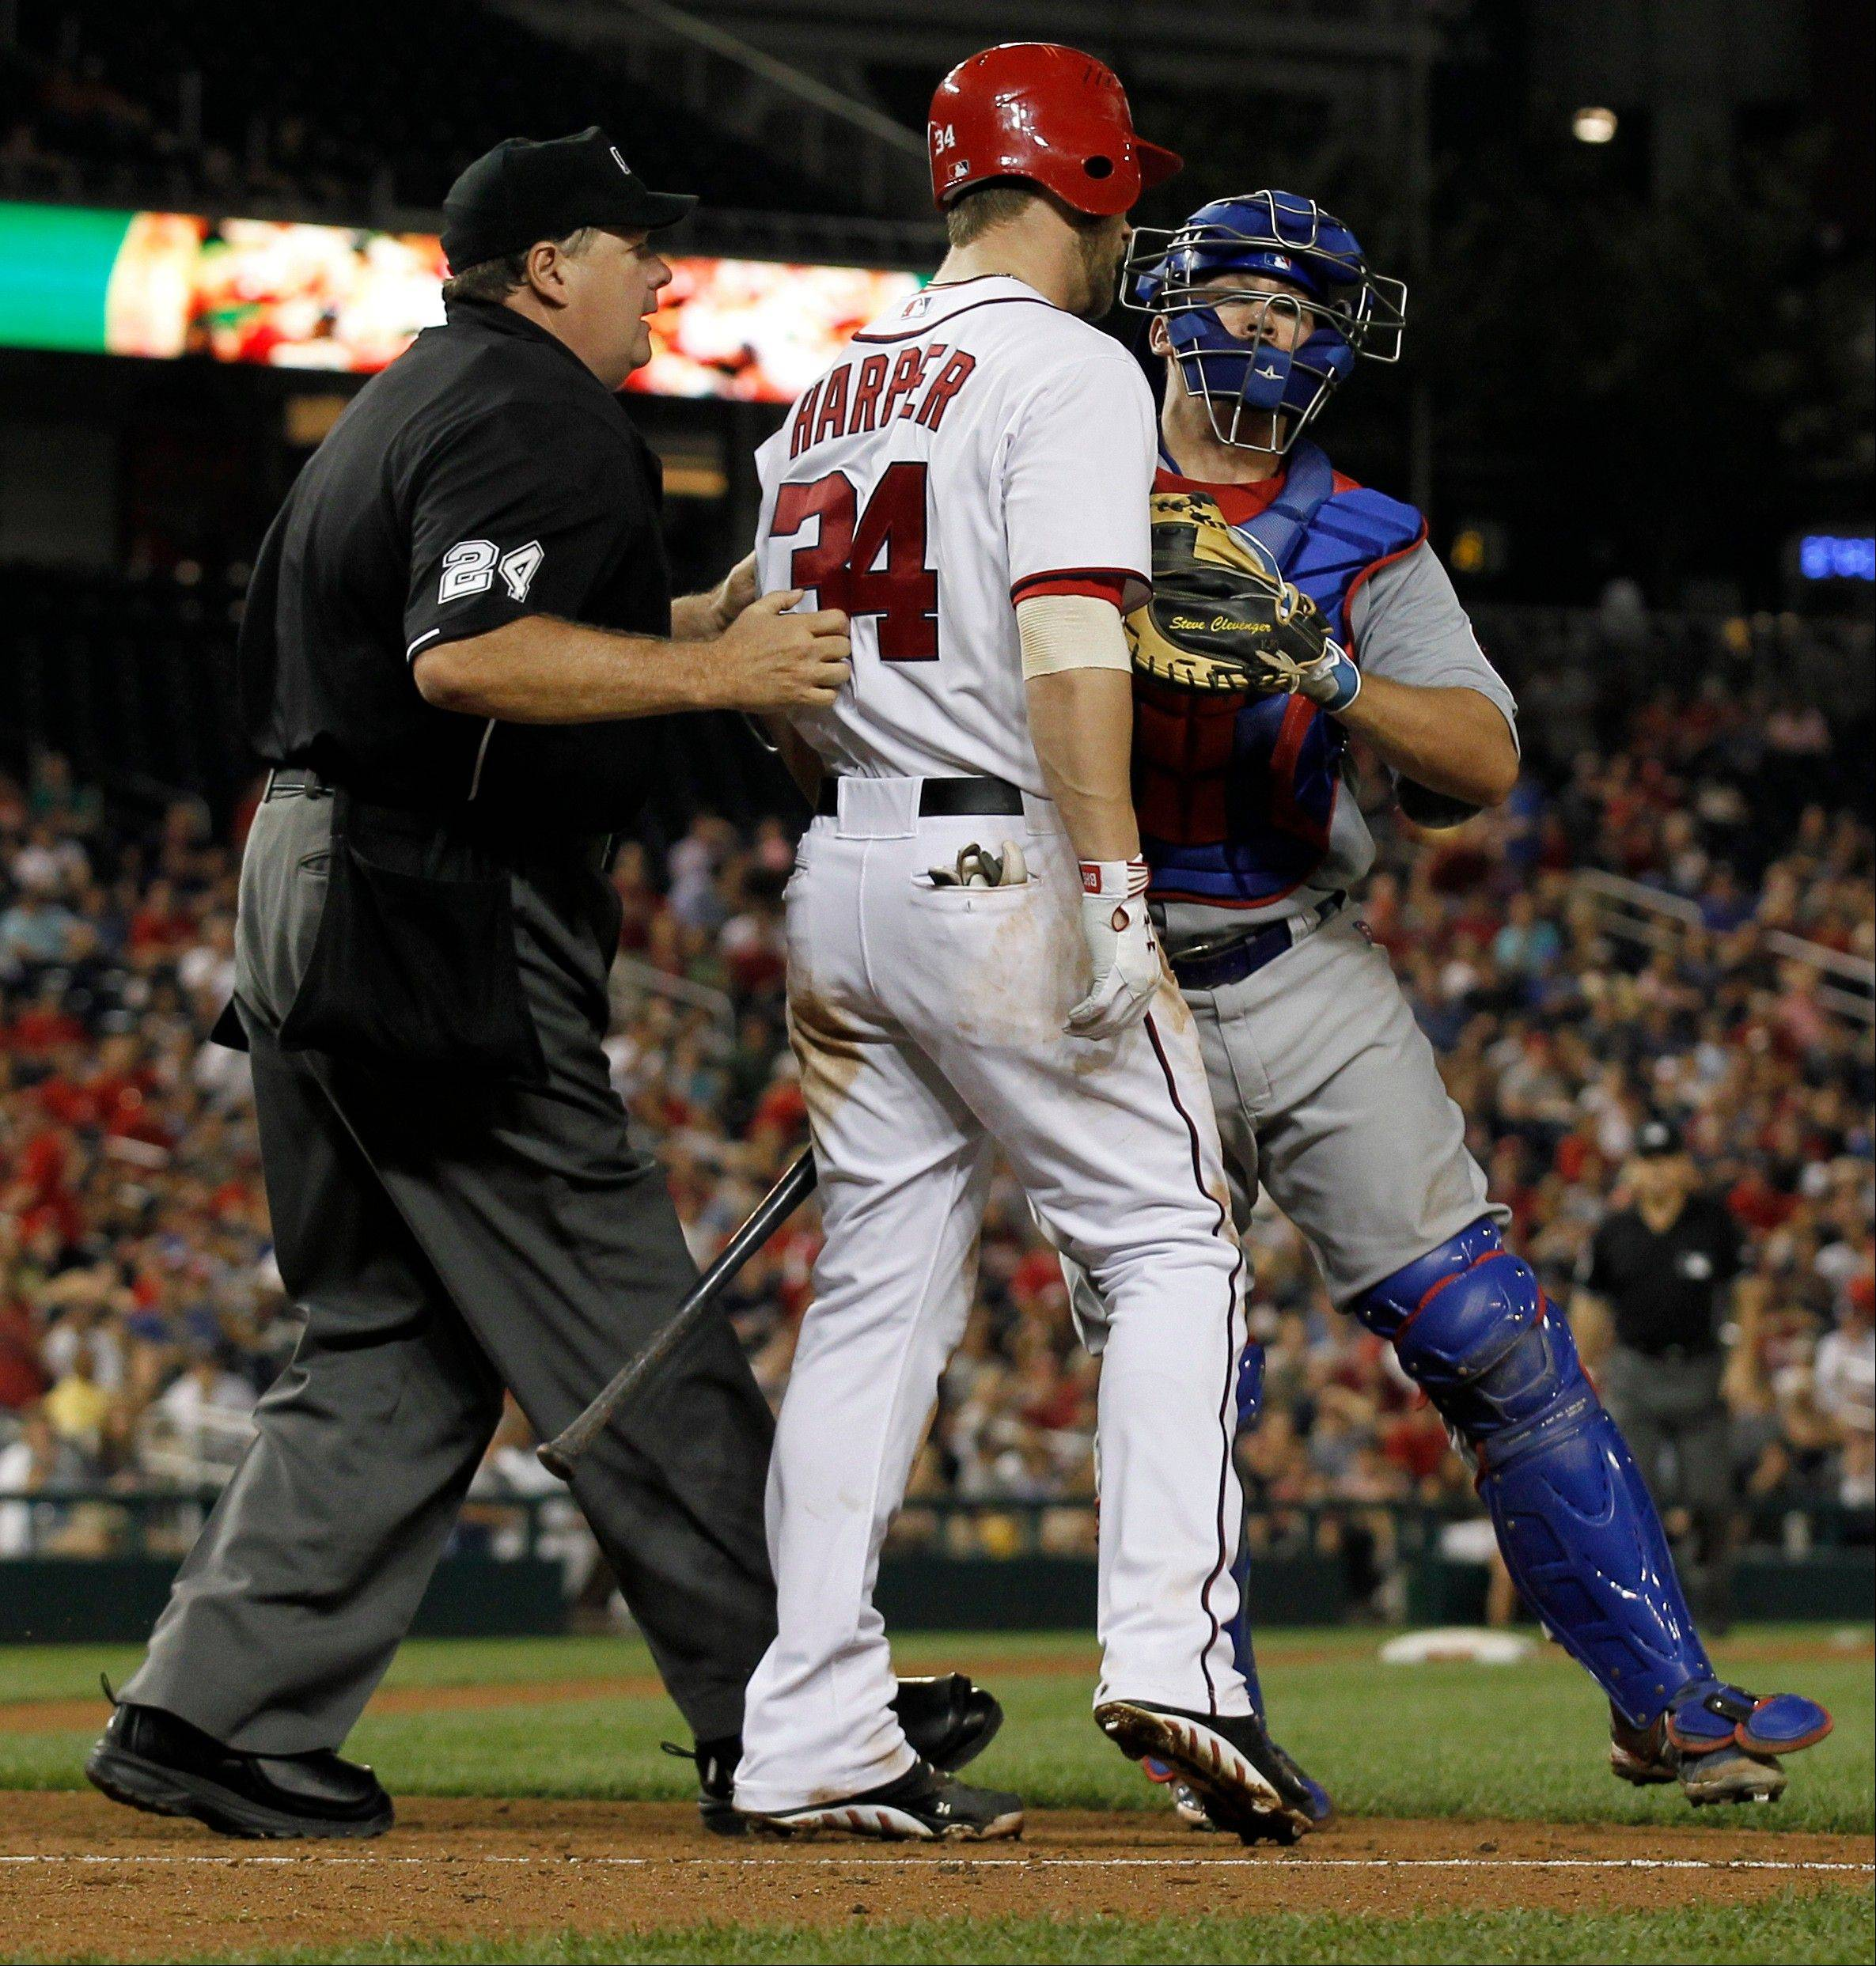 The Nationals' Bryce Harper is restrained by home-plate umpire Jerry Lane and Cubs catcher Steve Clevenger, and benches and bullpens emptied Thursday night at Washington.